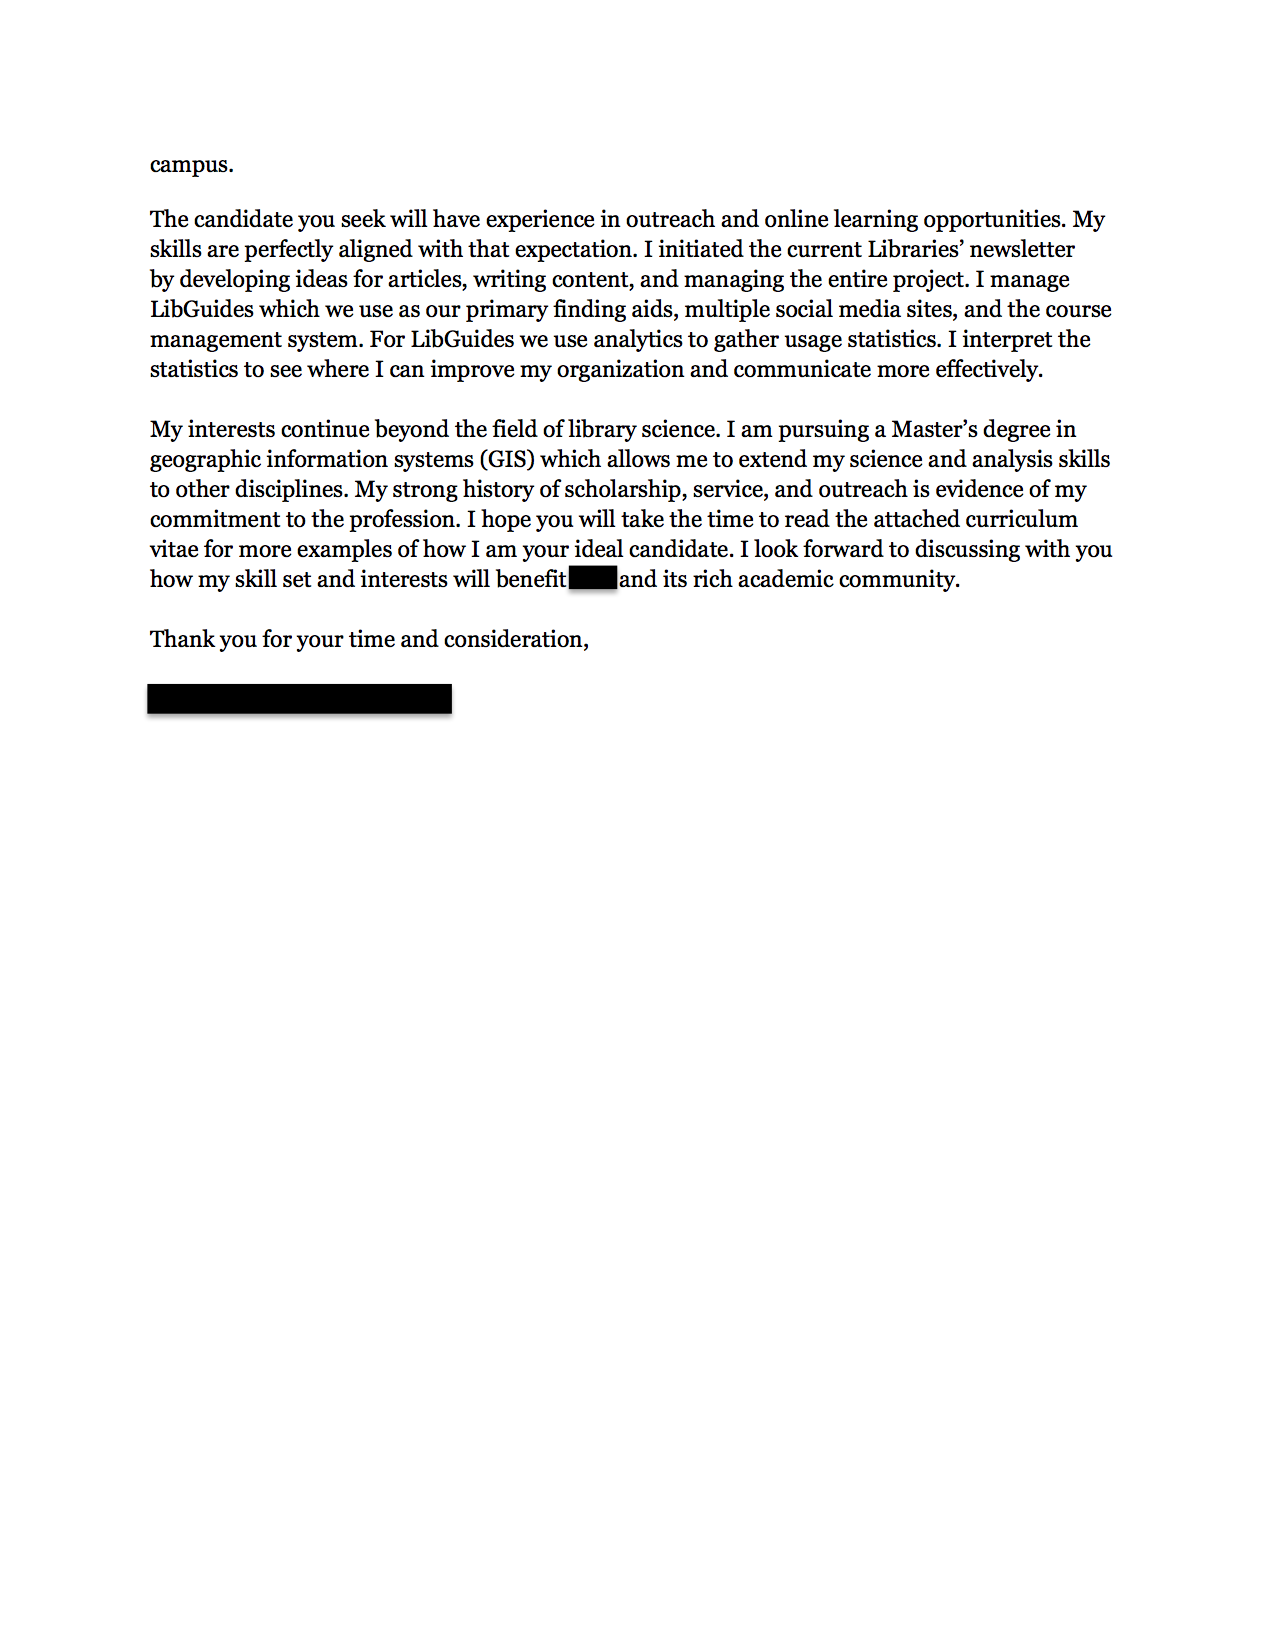 Community relations cover letter. Use this academic advisor cover ...